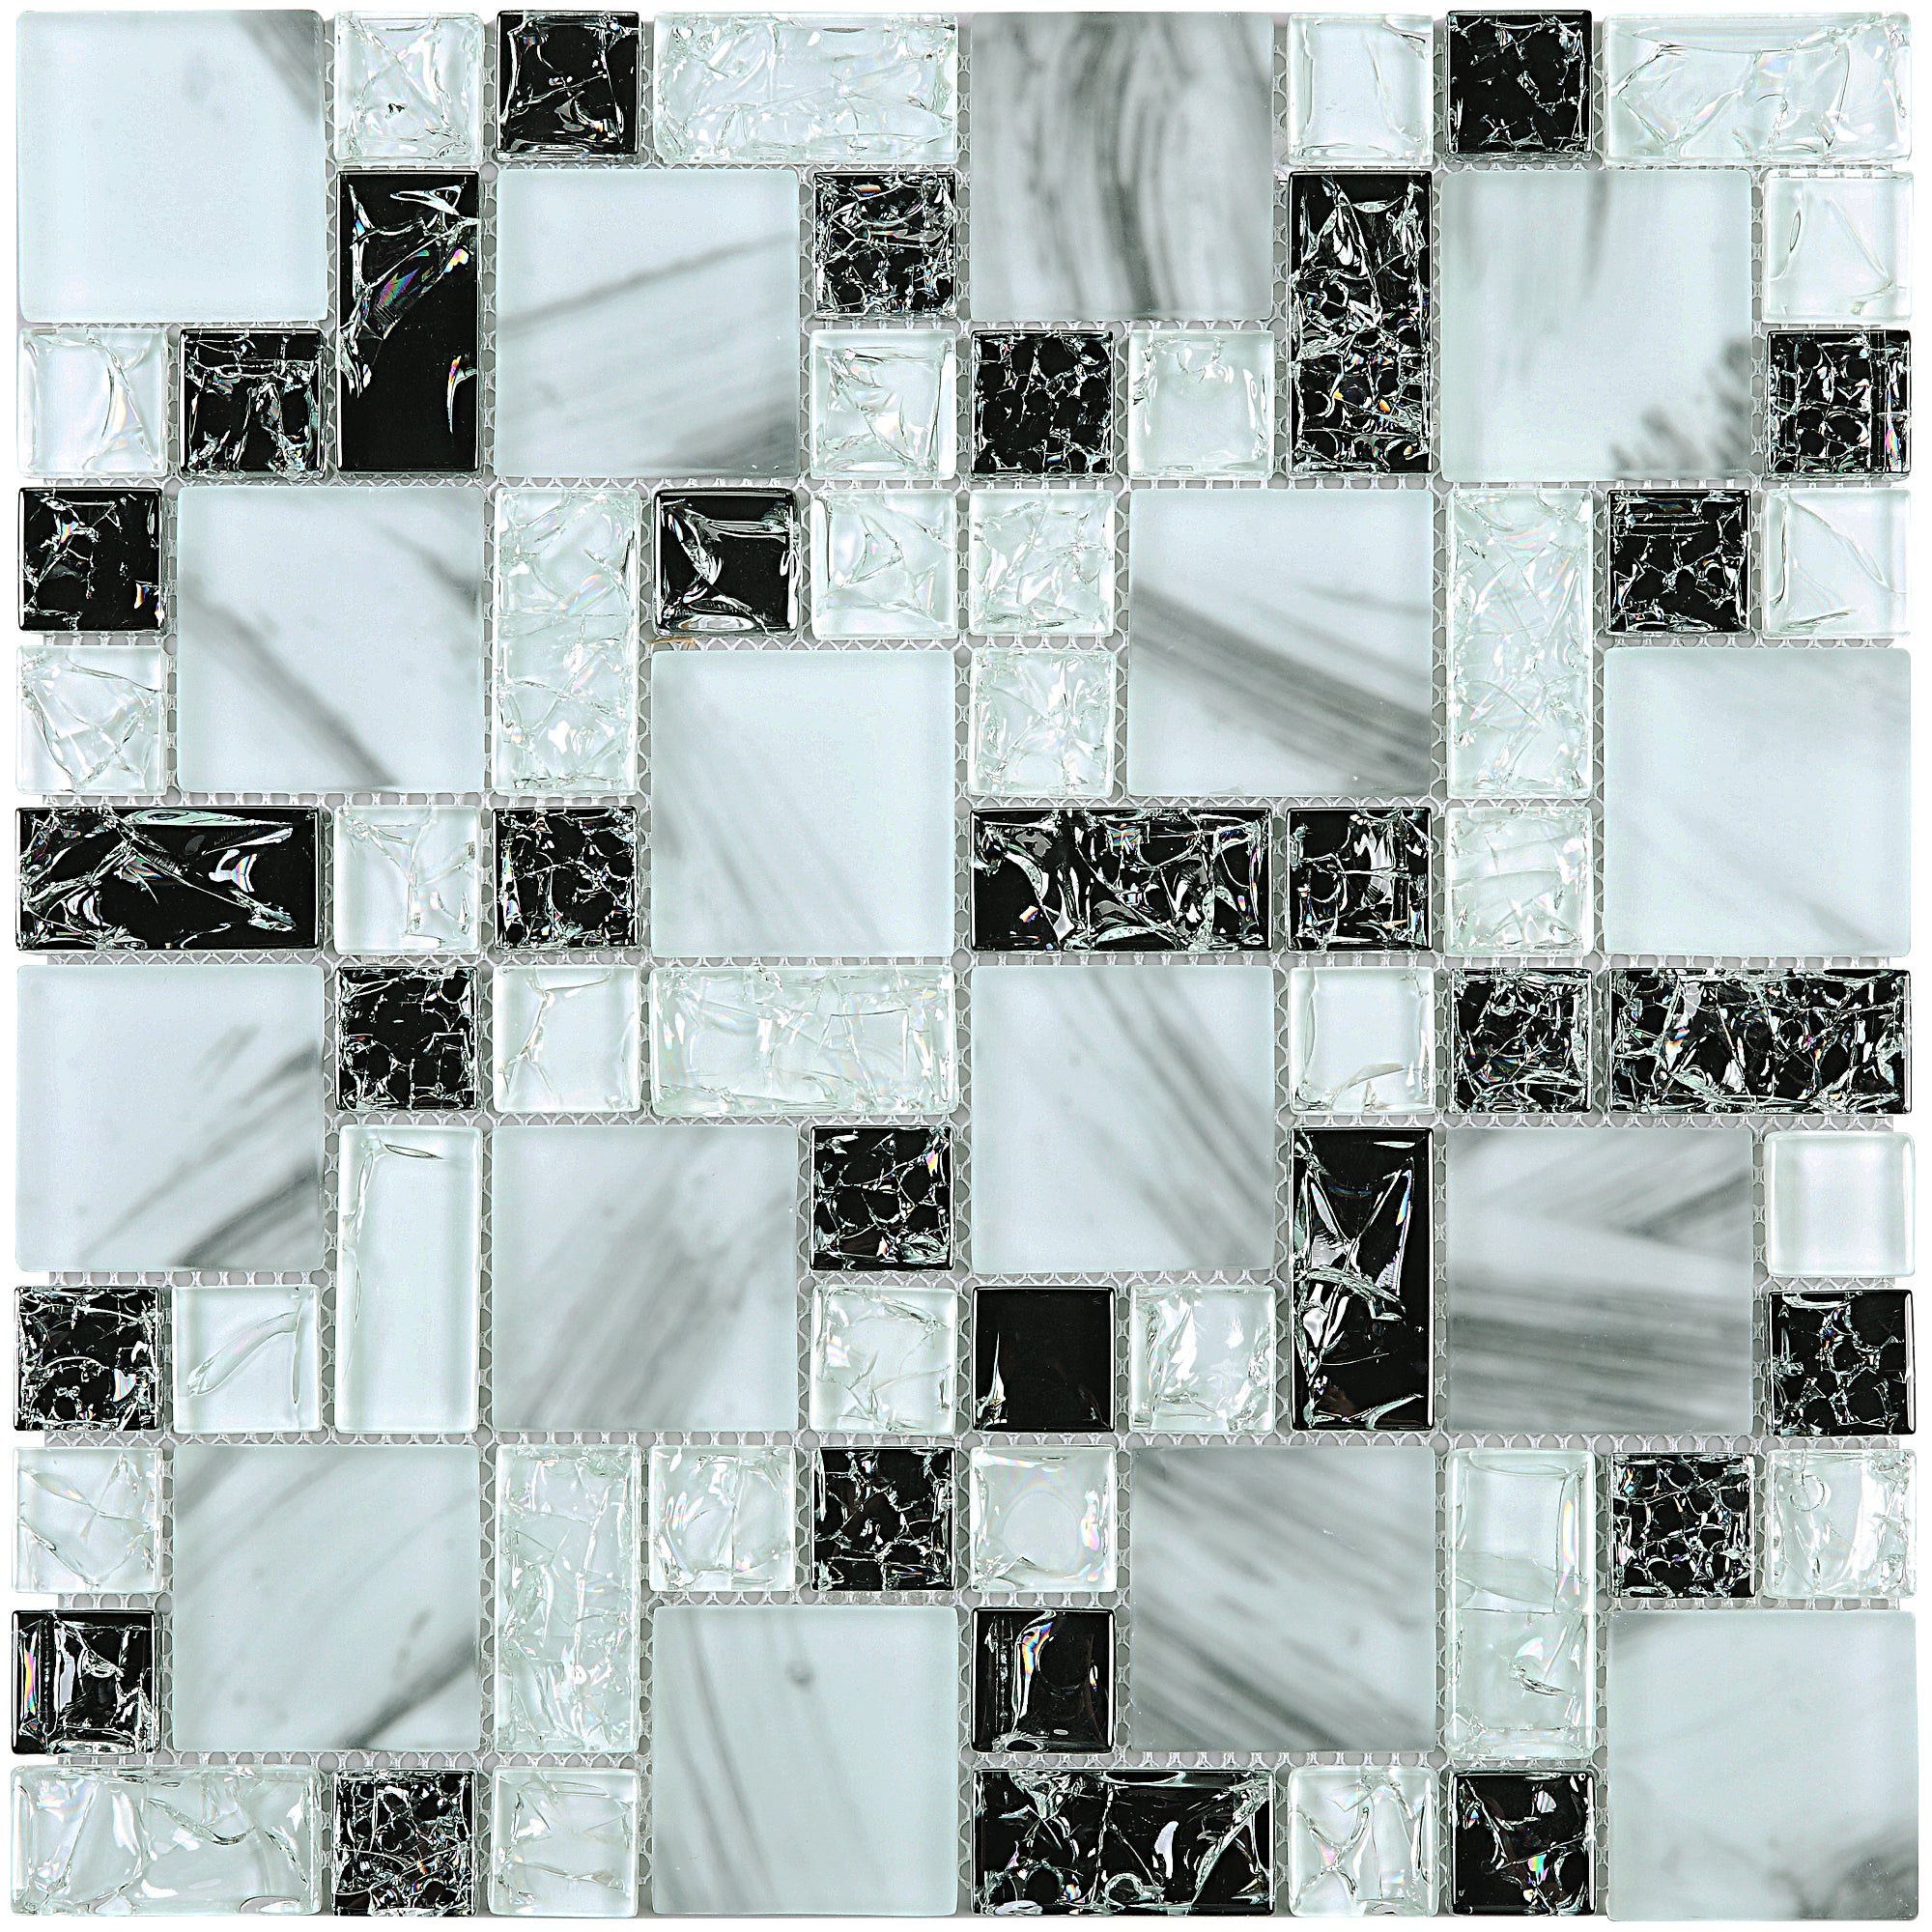 - TCESG-03 Random Square Crackled Glass Mosaic Tile In Black And